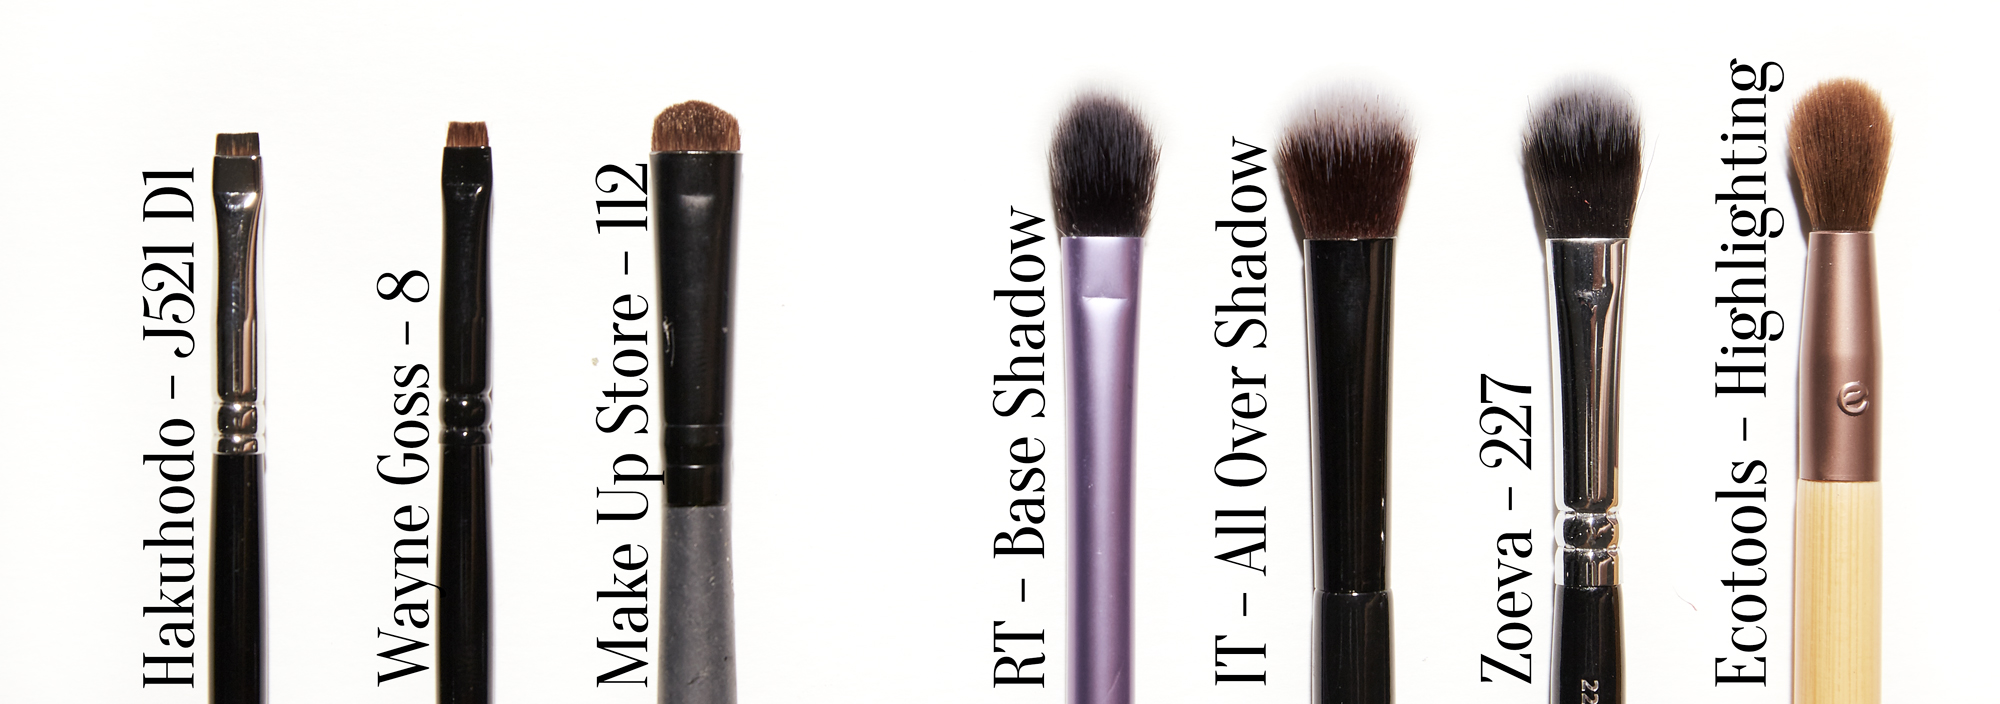 Japanese Brush Starter Kit – Eye Brushes